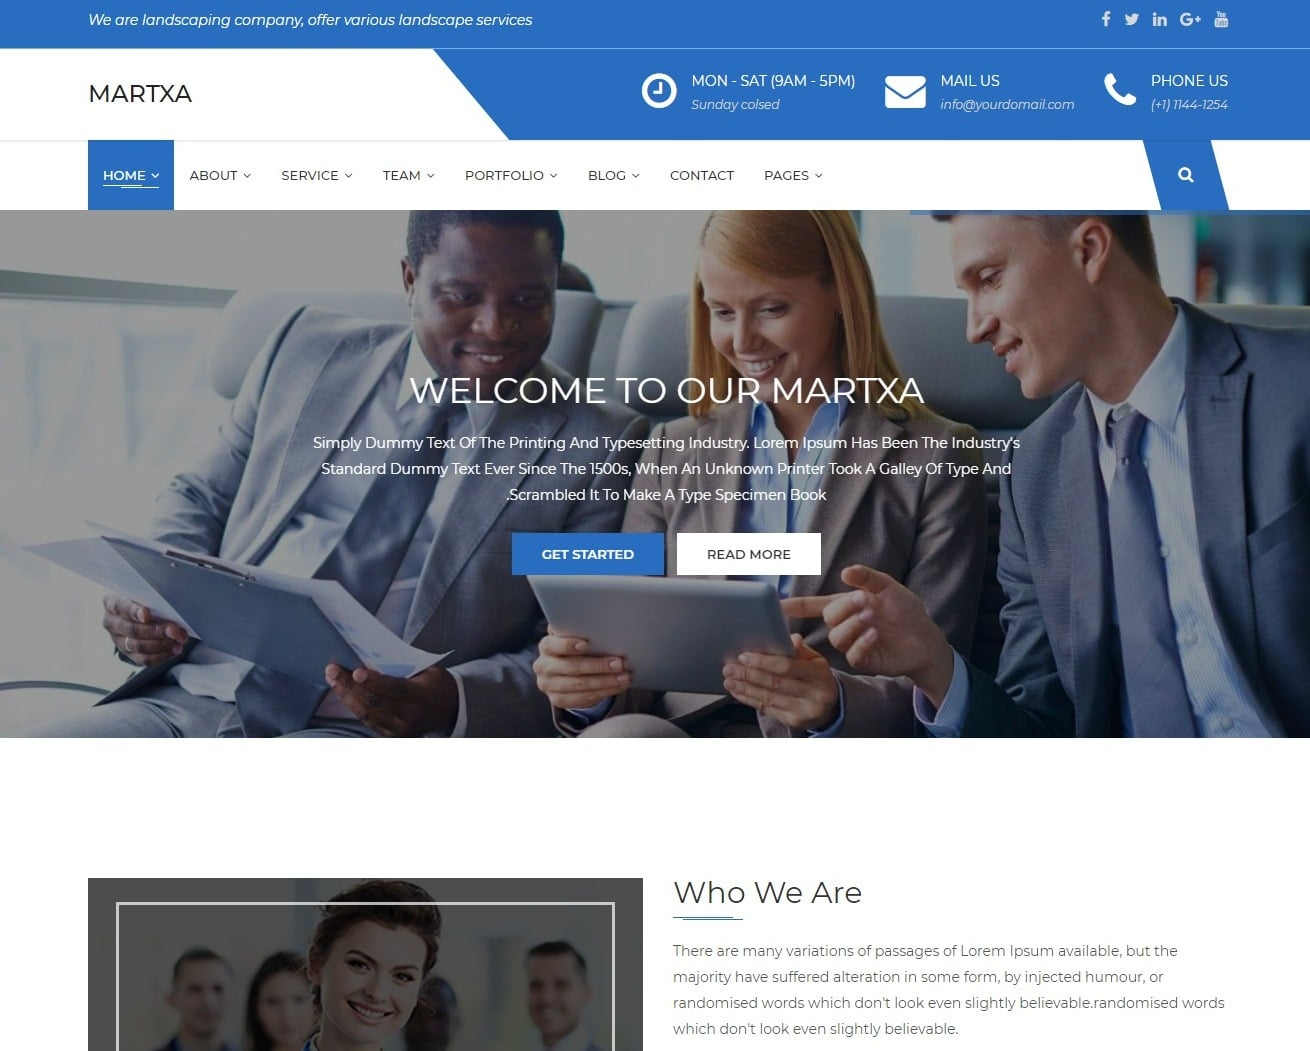 martxa transportation website template